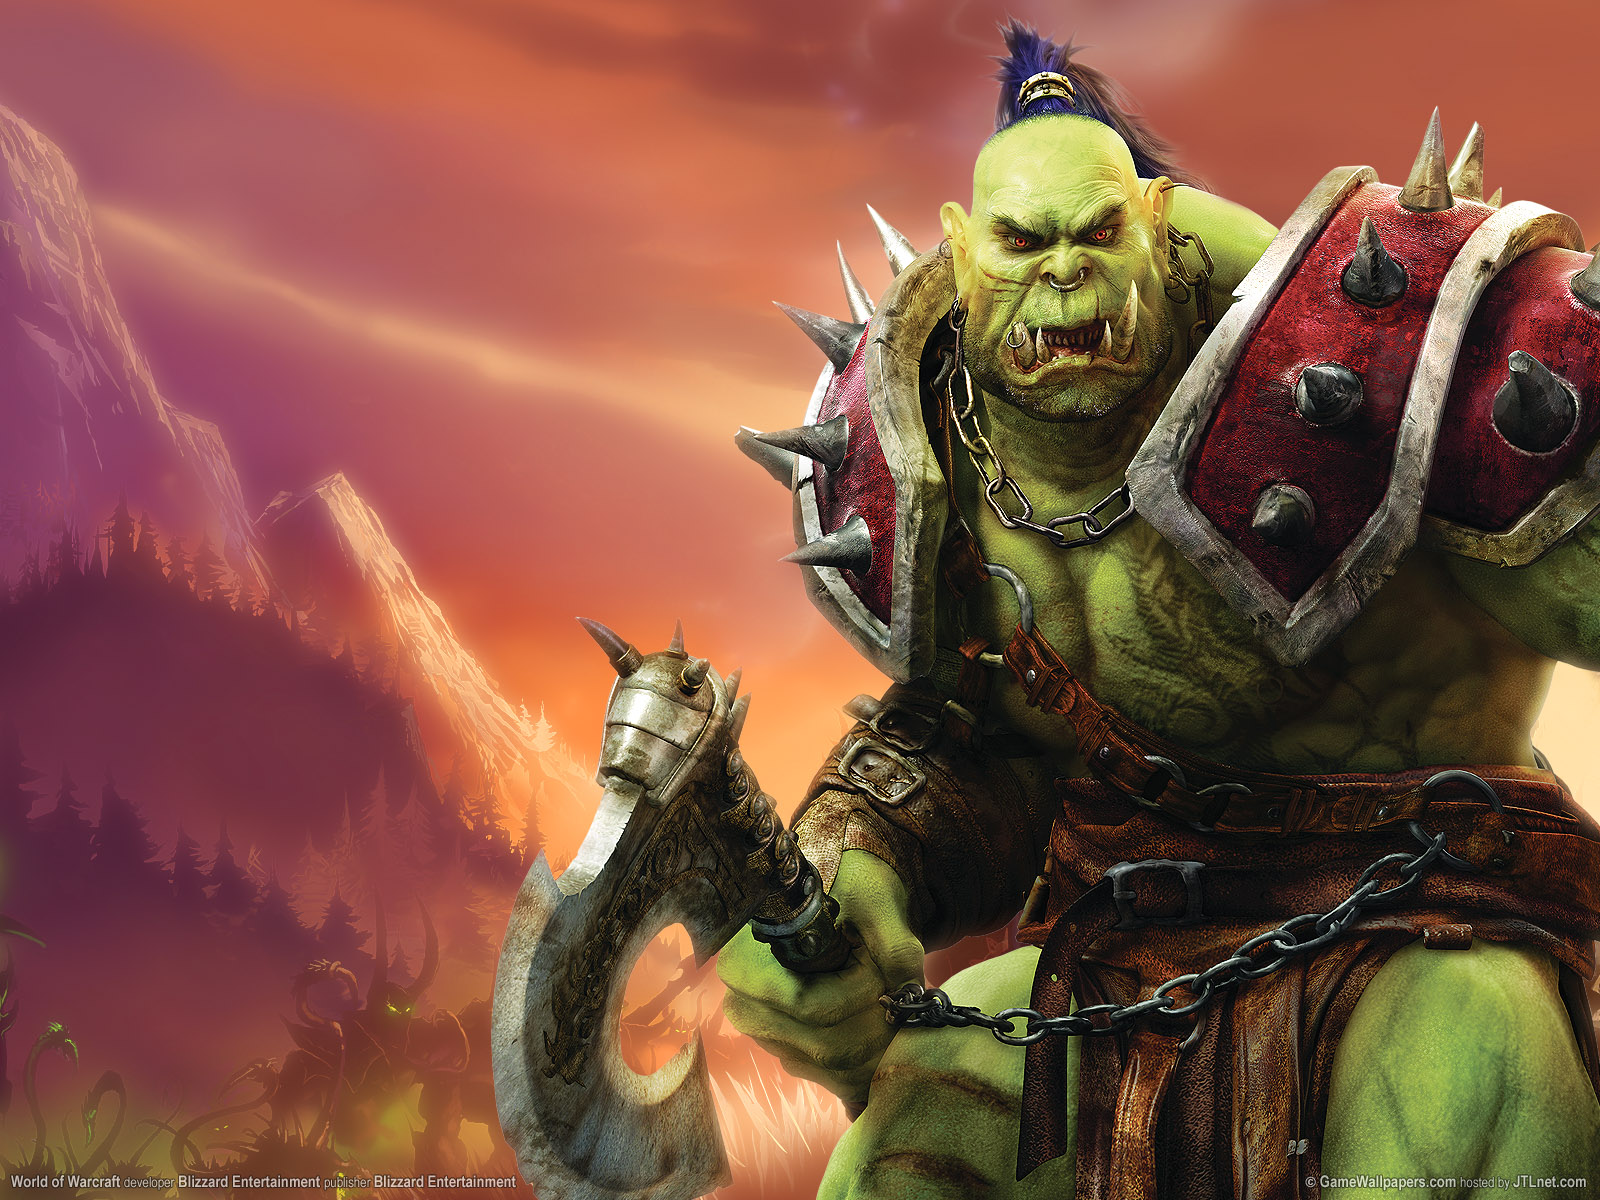 http://3.bp.blogspot.com/-yKAhuH5KqC8/UCIfakFulfI/AAAAAAAADB0/qUuf4HGveRw/s1600/world-of-warcraft-orc-wallpaper.jpg